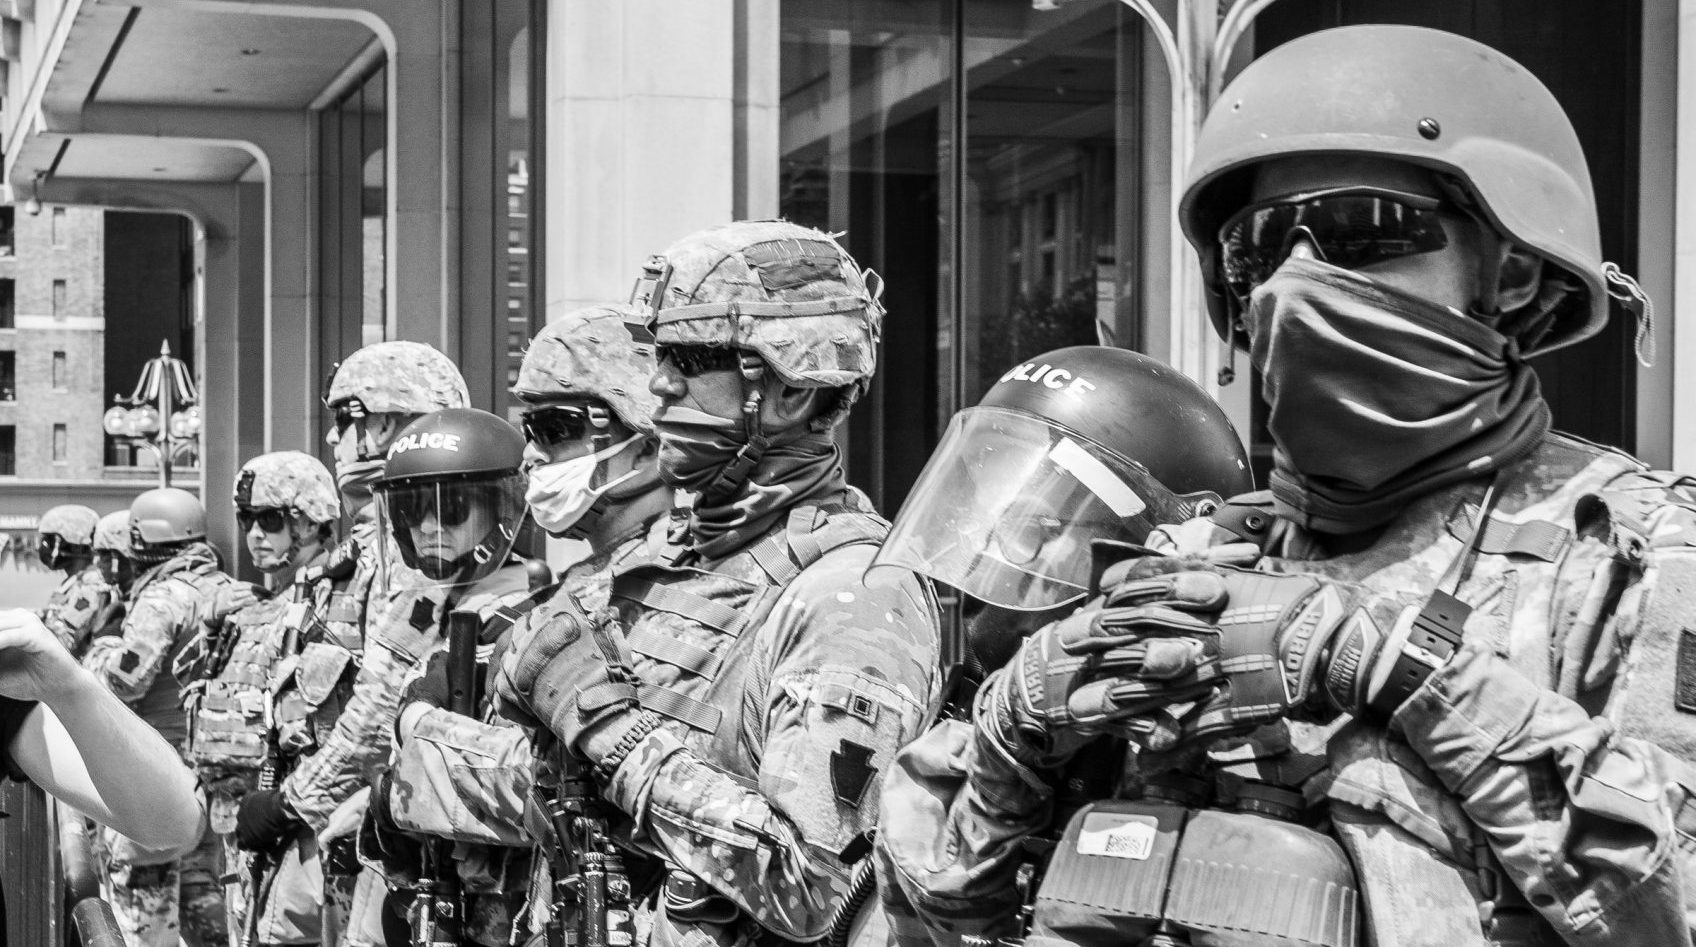 Army National Guard Prepares to Deploy Troops to Cities